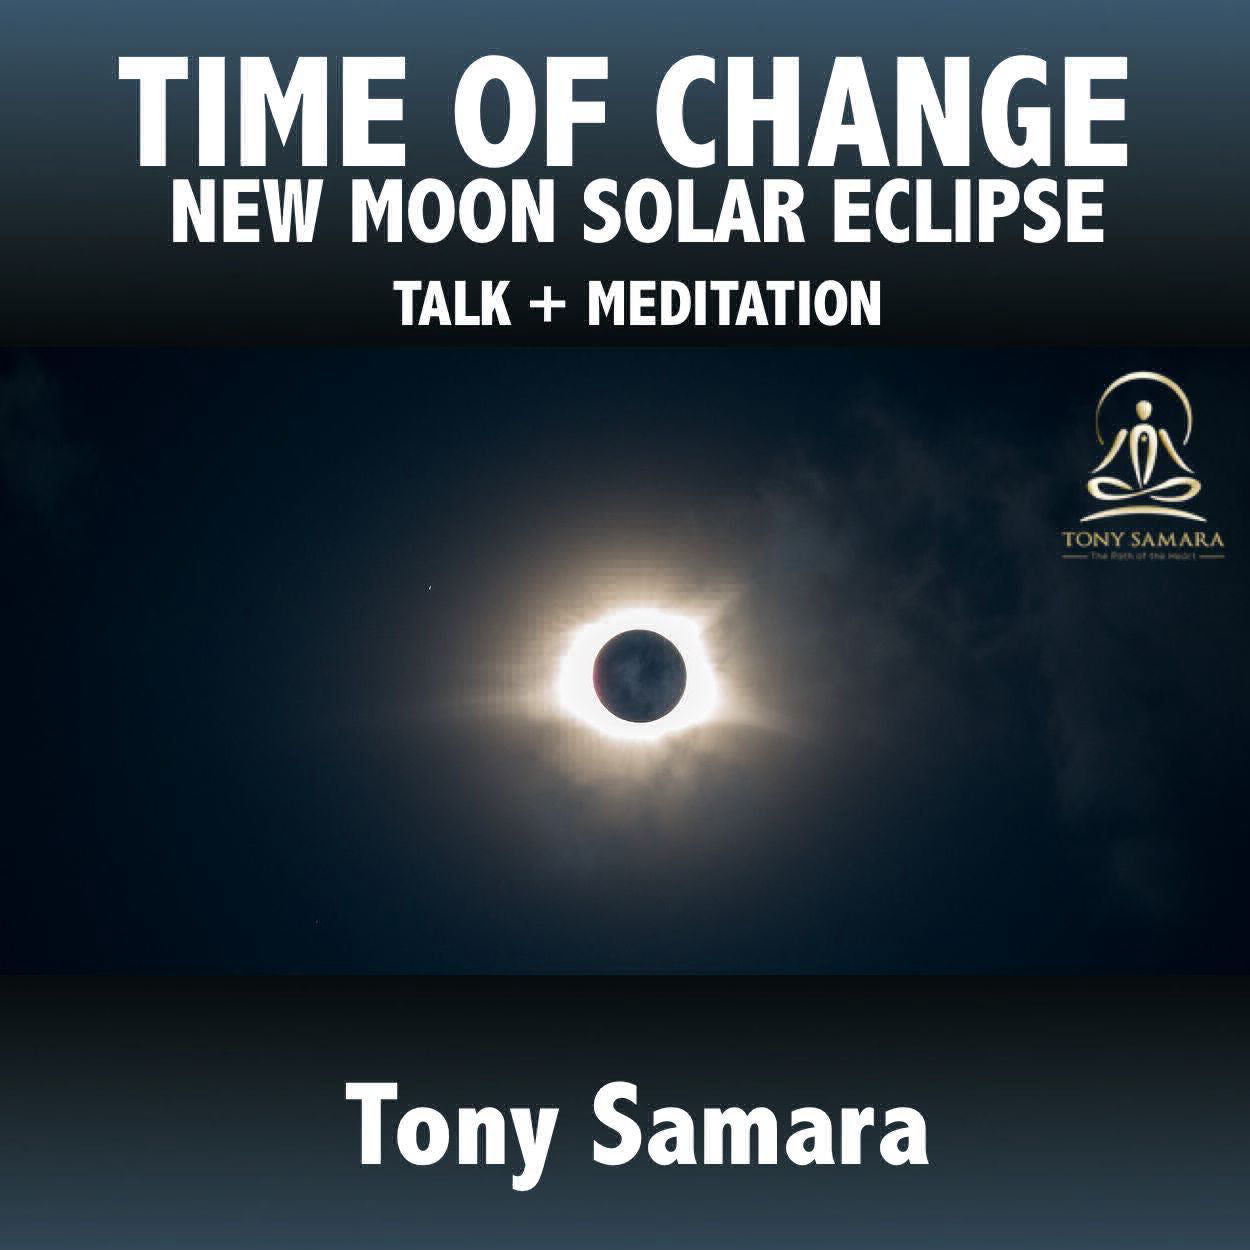 A Time of Change New Moon Solar Eclipse Talk + Meditation - Tony Samara Meditation